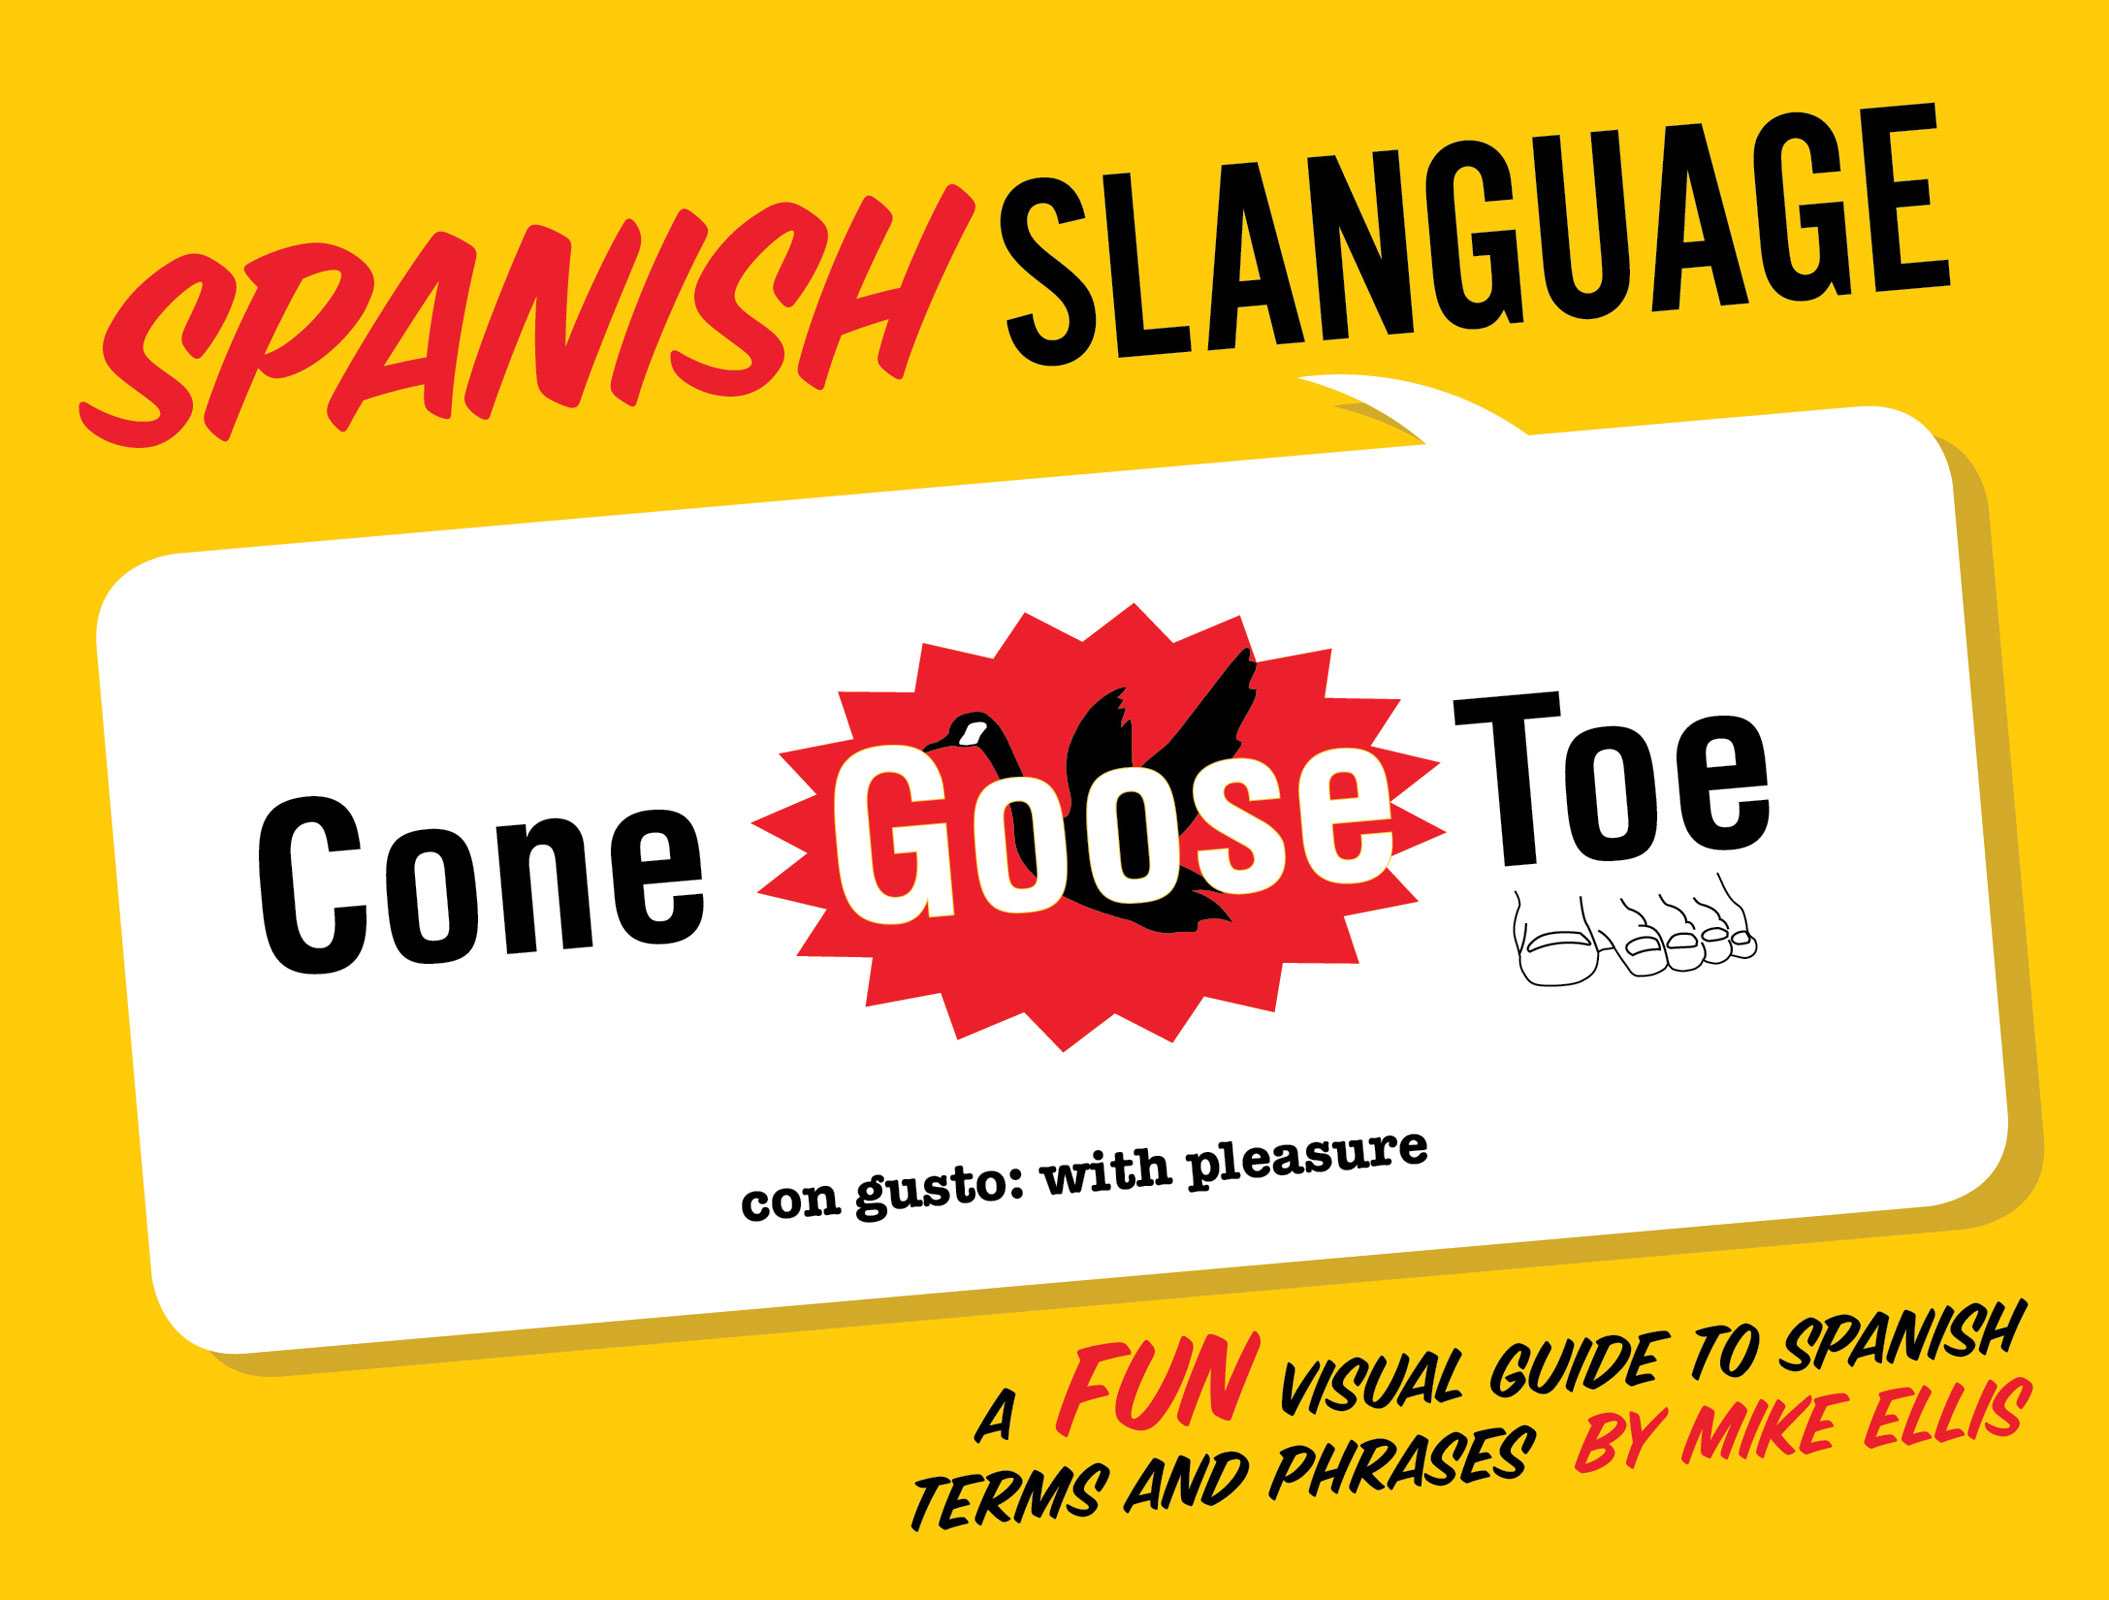 Spanish Slanguage By: Michael Ellis